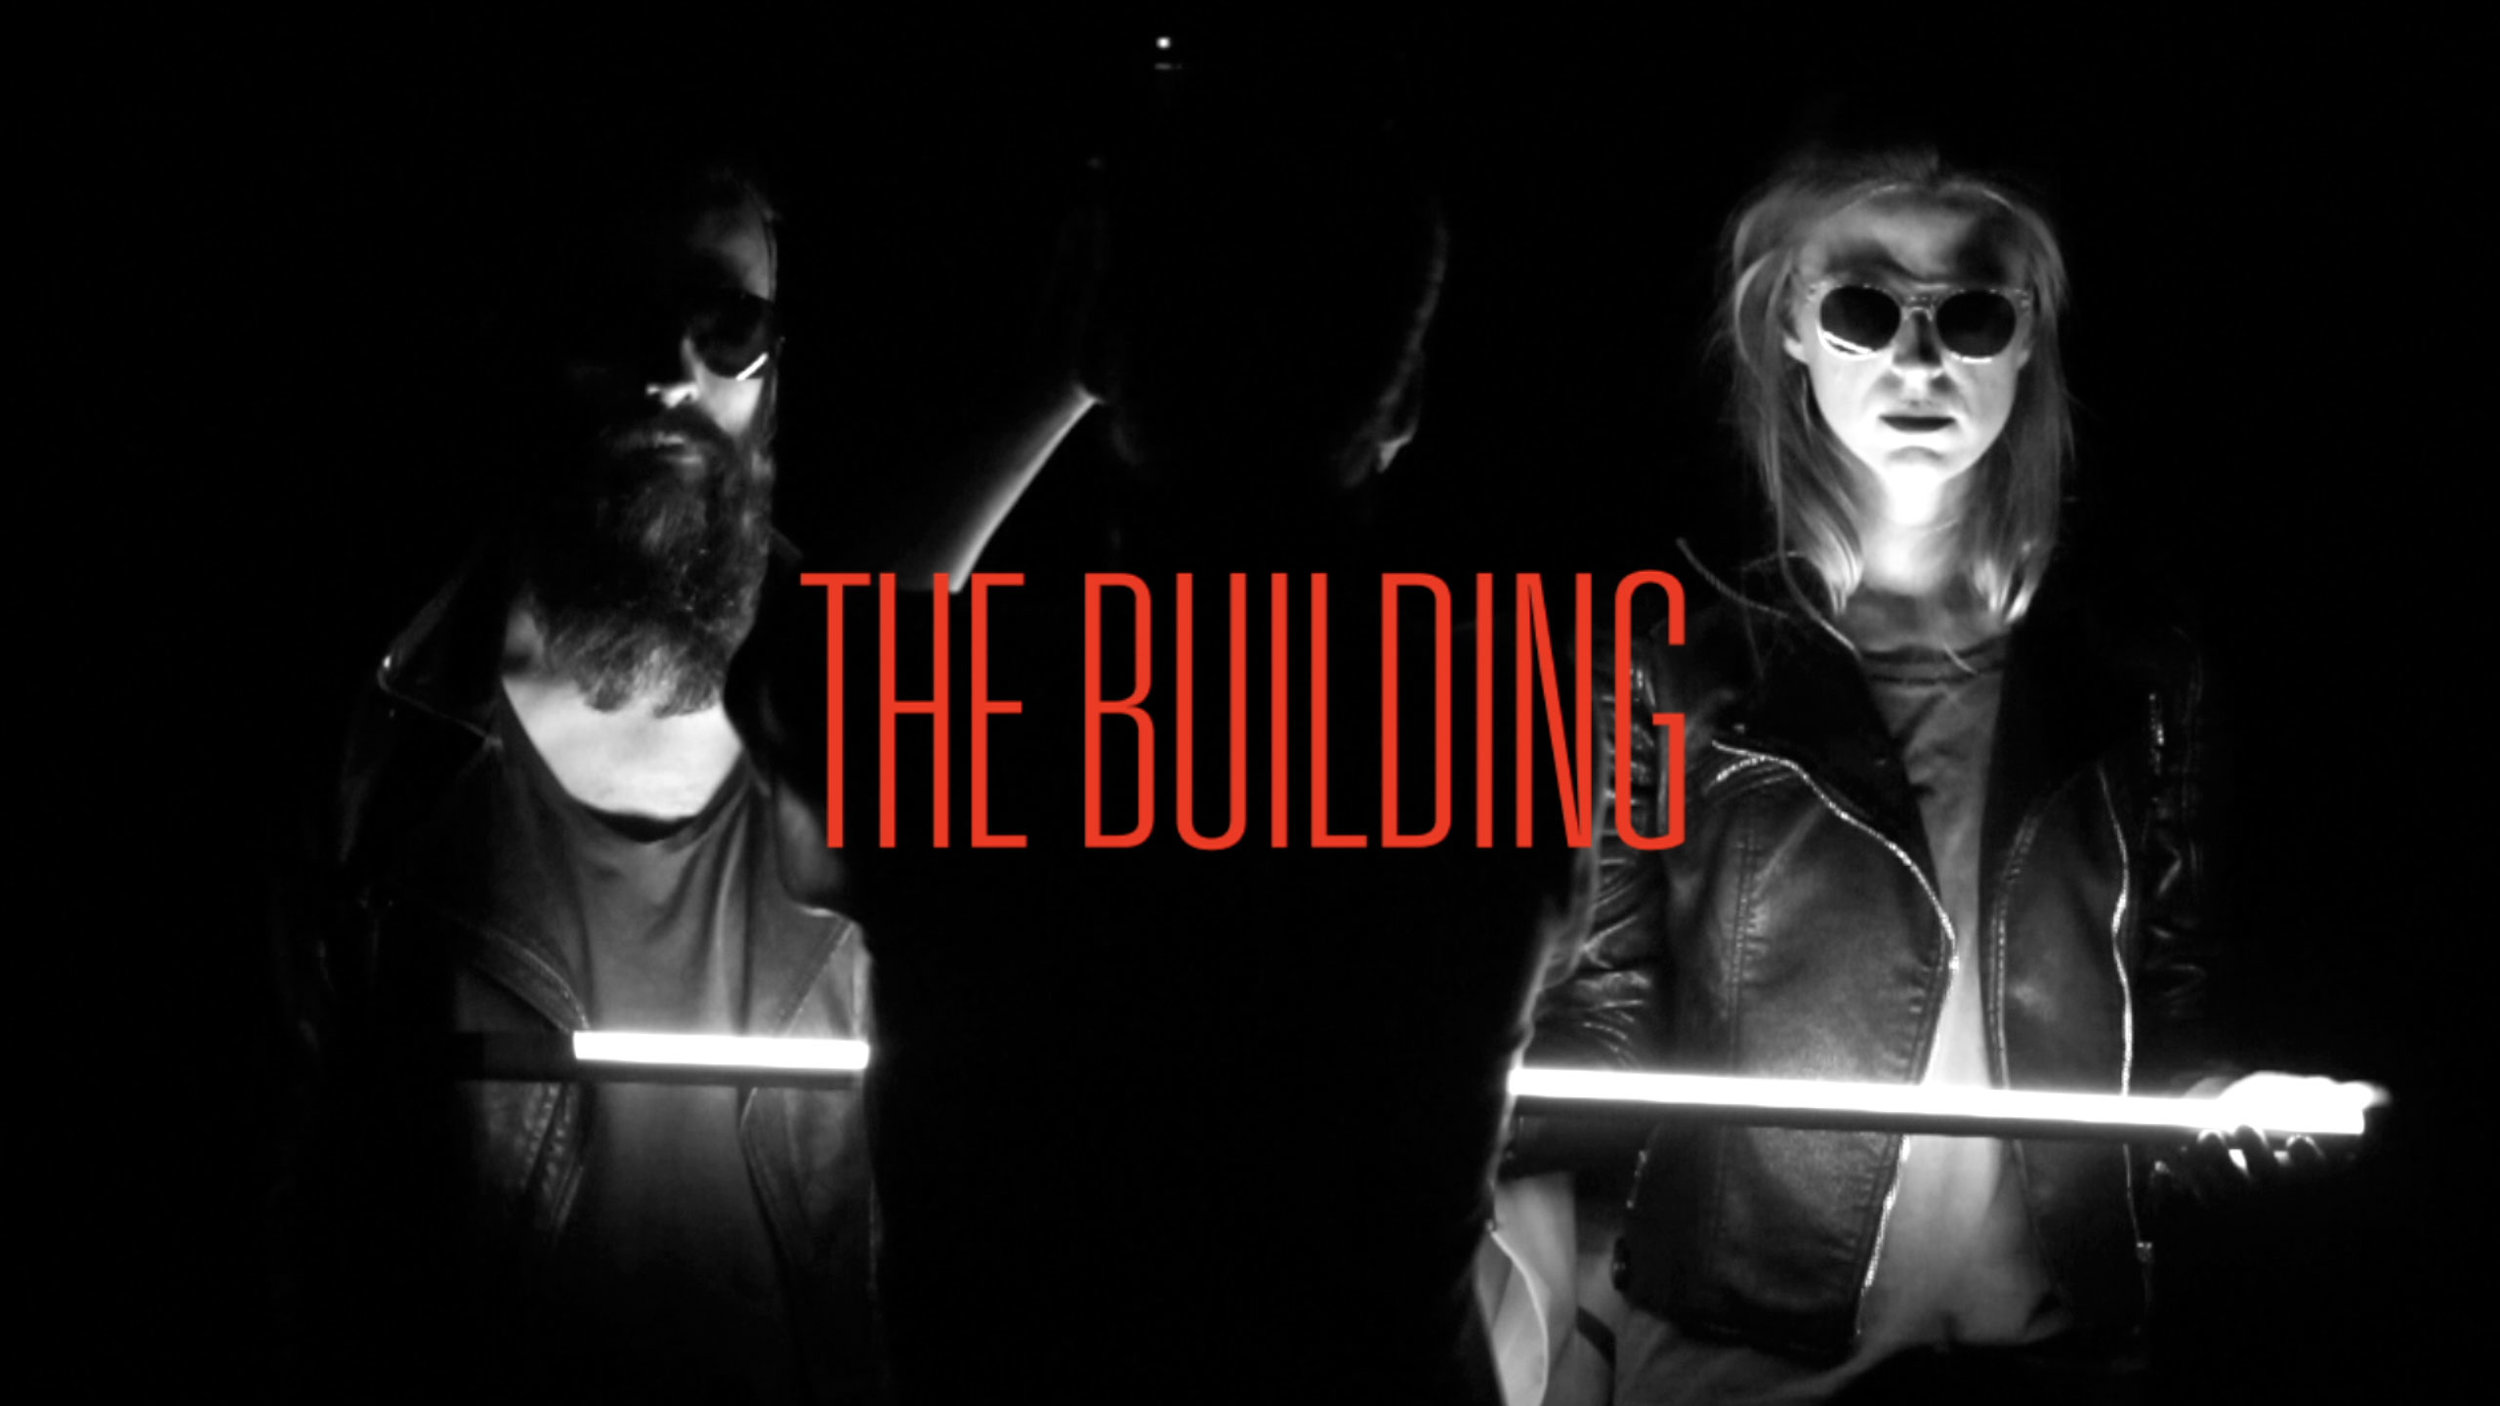 THE-BUILDING_MUSIC-VIDEO-1.jpg